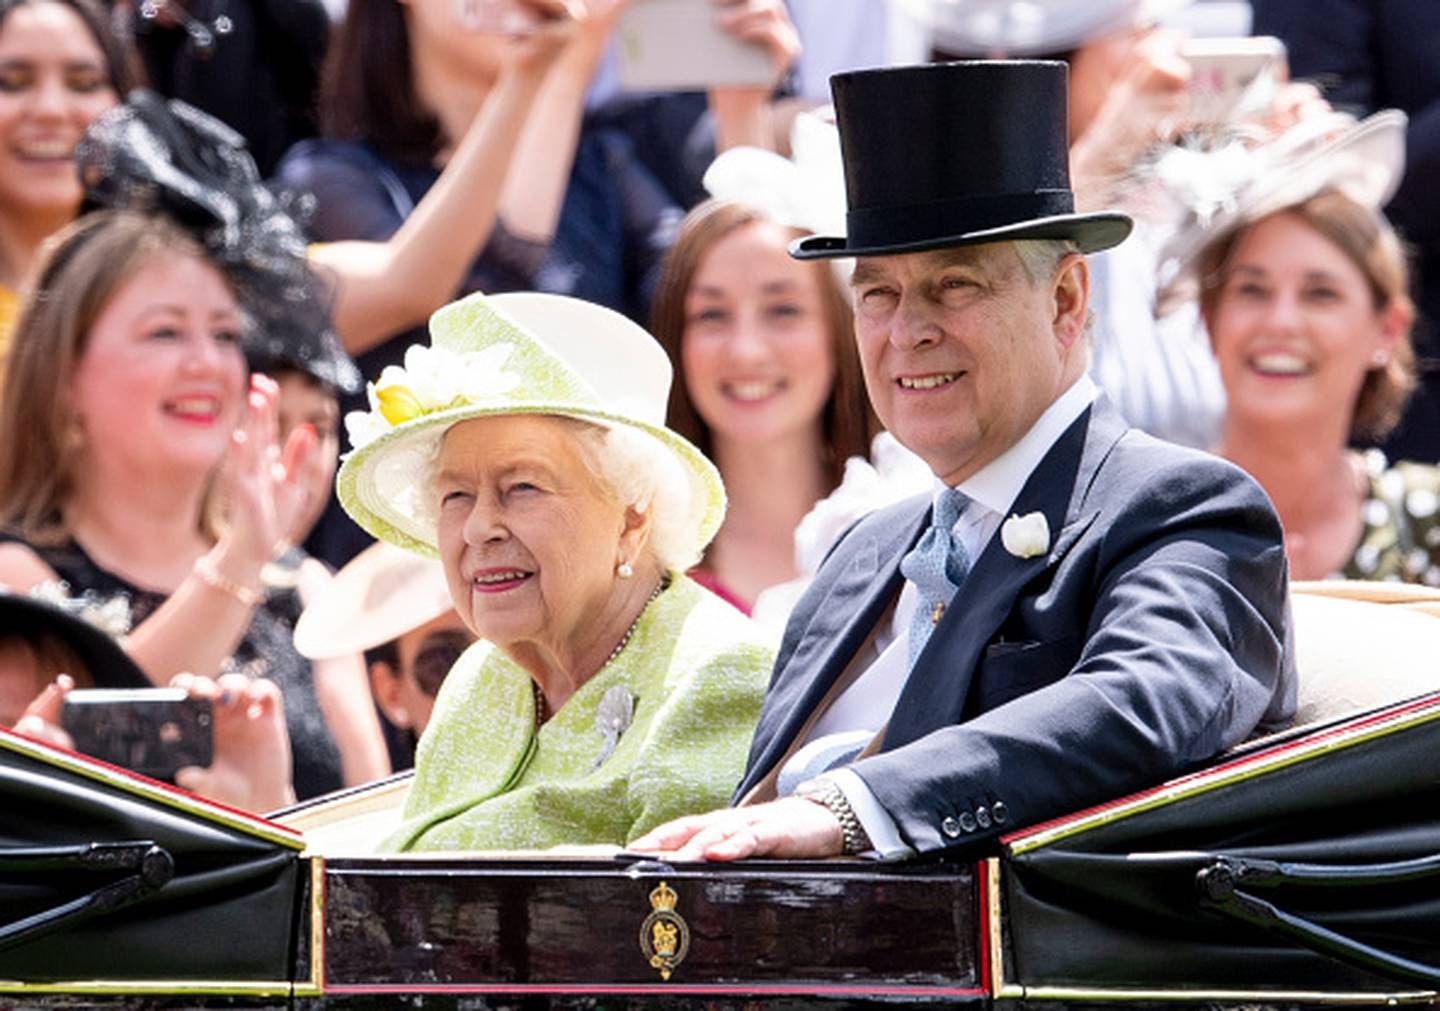 The Queen is footing the legal bill. Photo / Getty Images